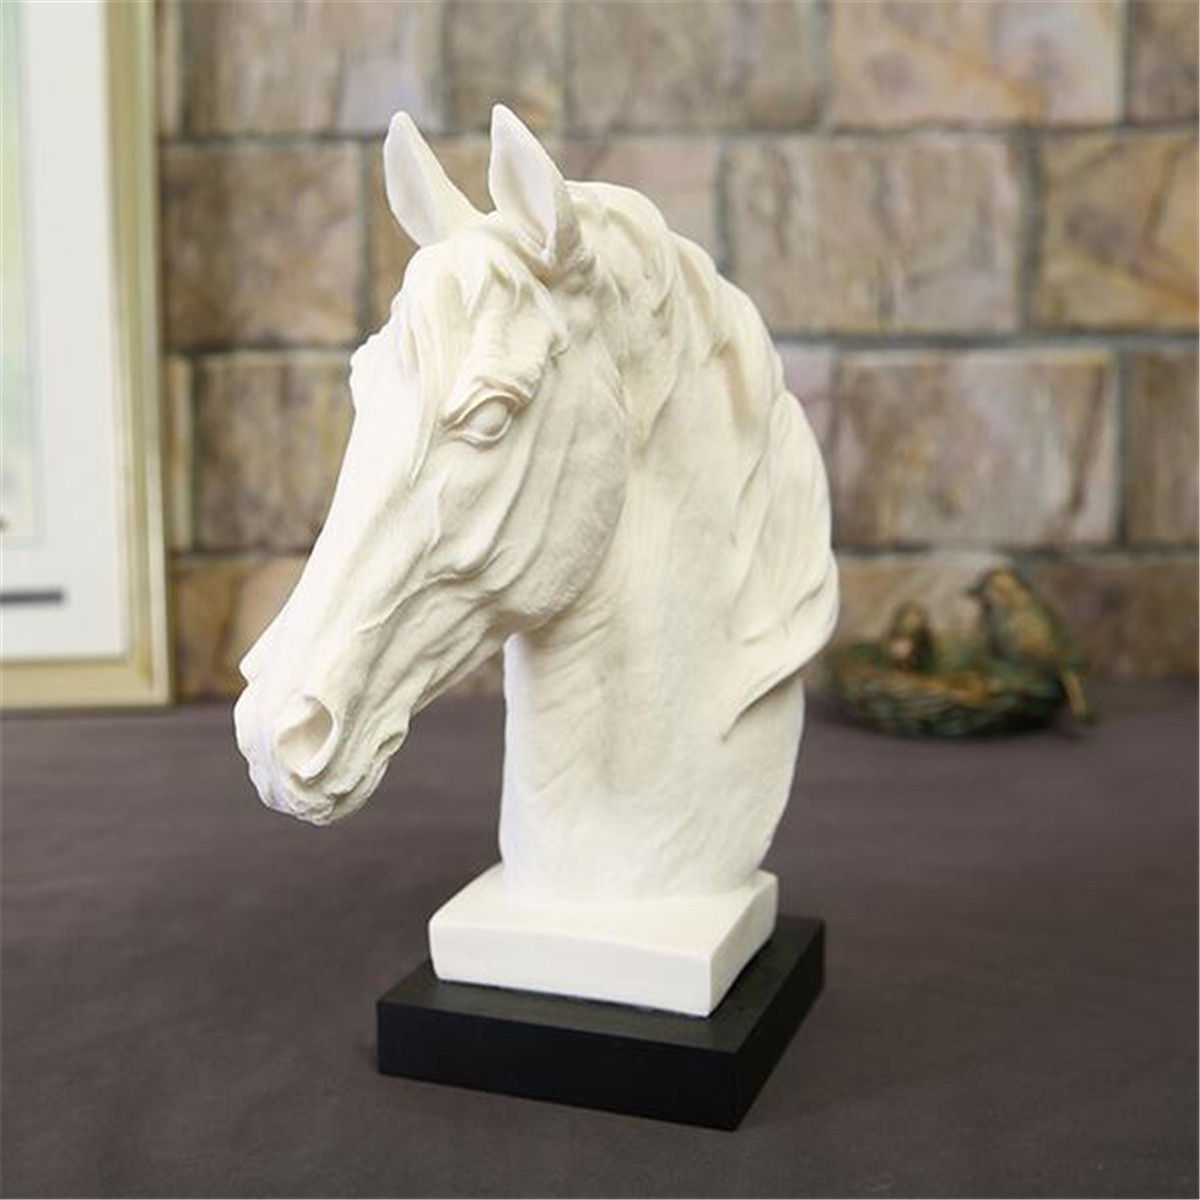 Abstract White Horse Head Sculpture Animal Resin Statue Modern Home Decorative Geometric Resin Ornaments Horse Riding Gift